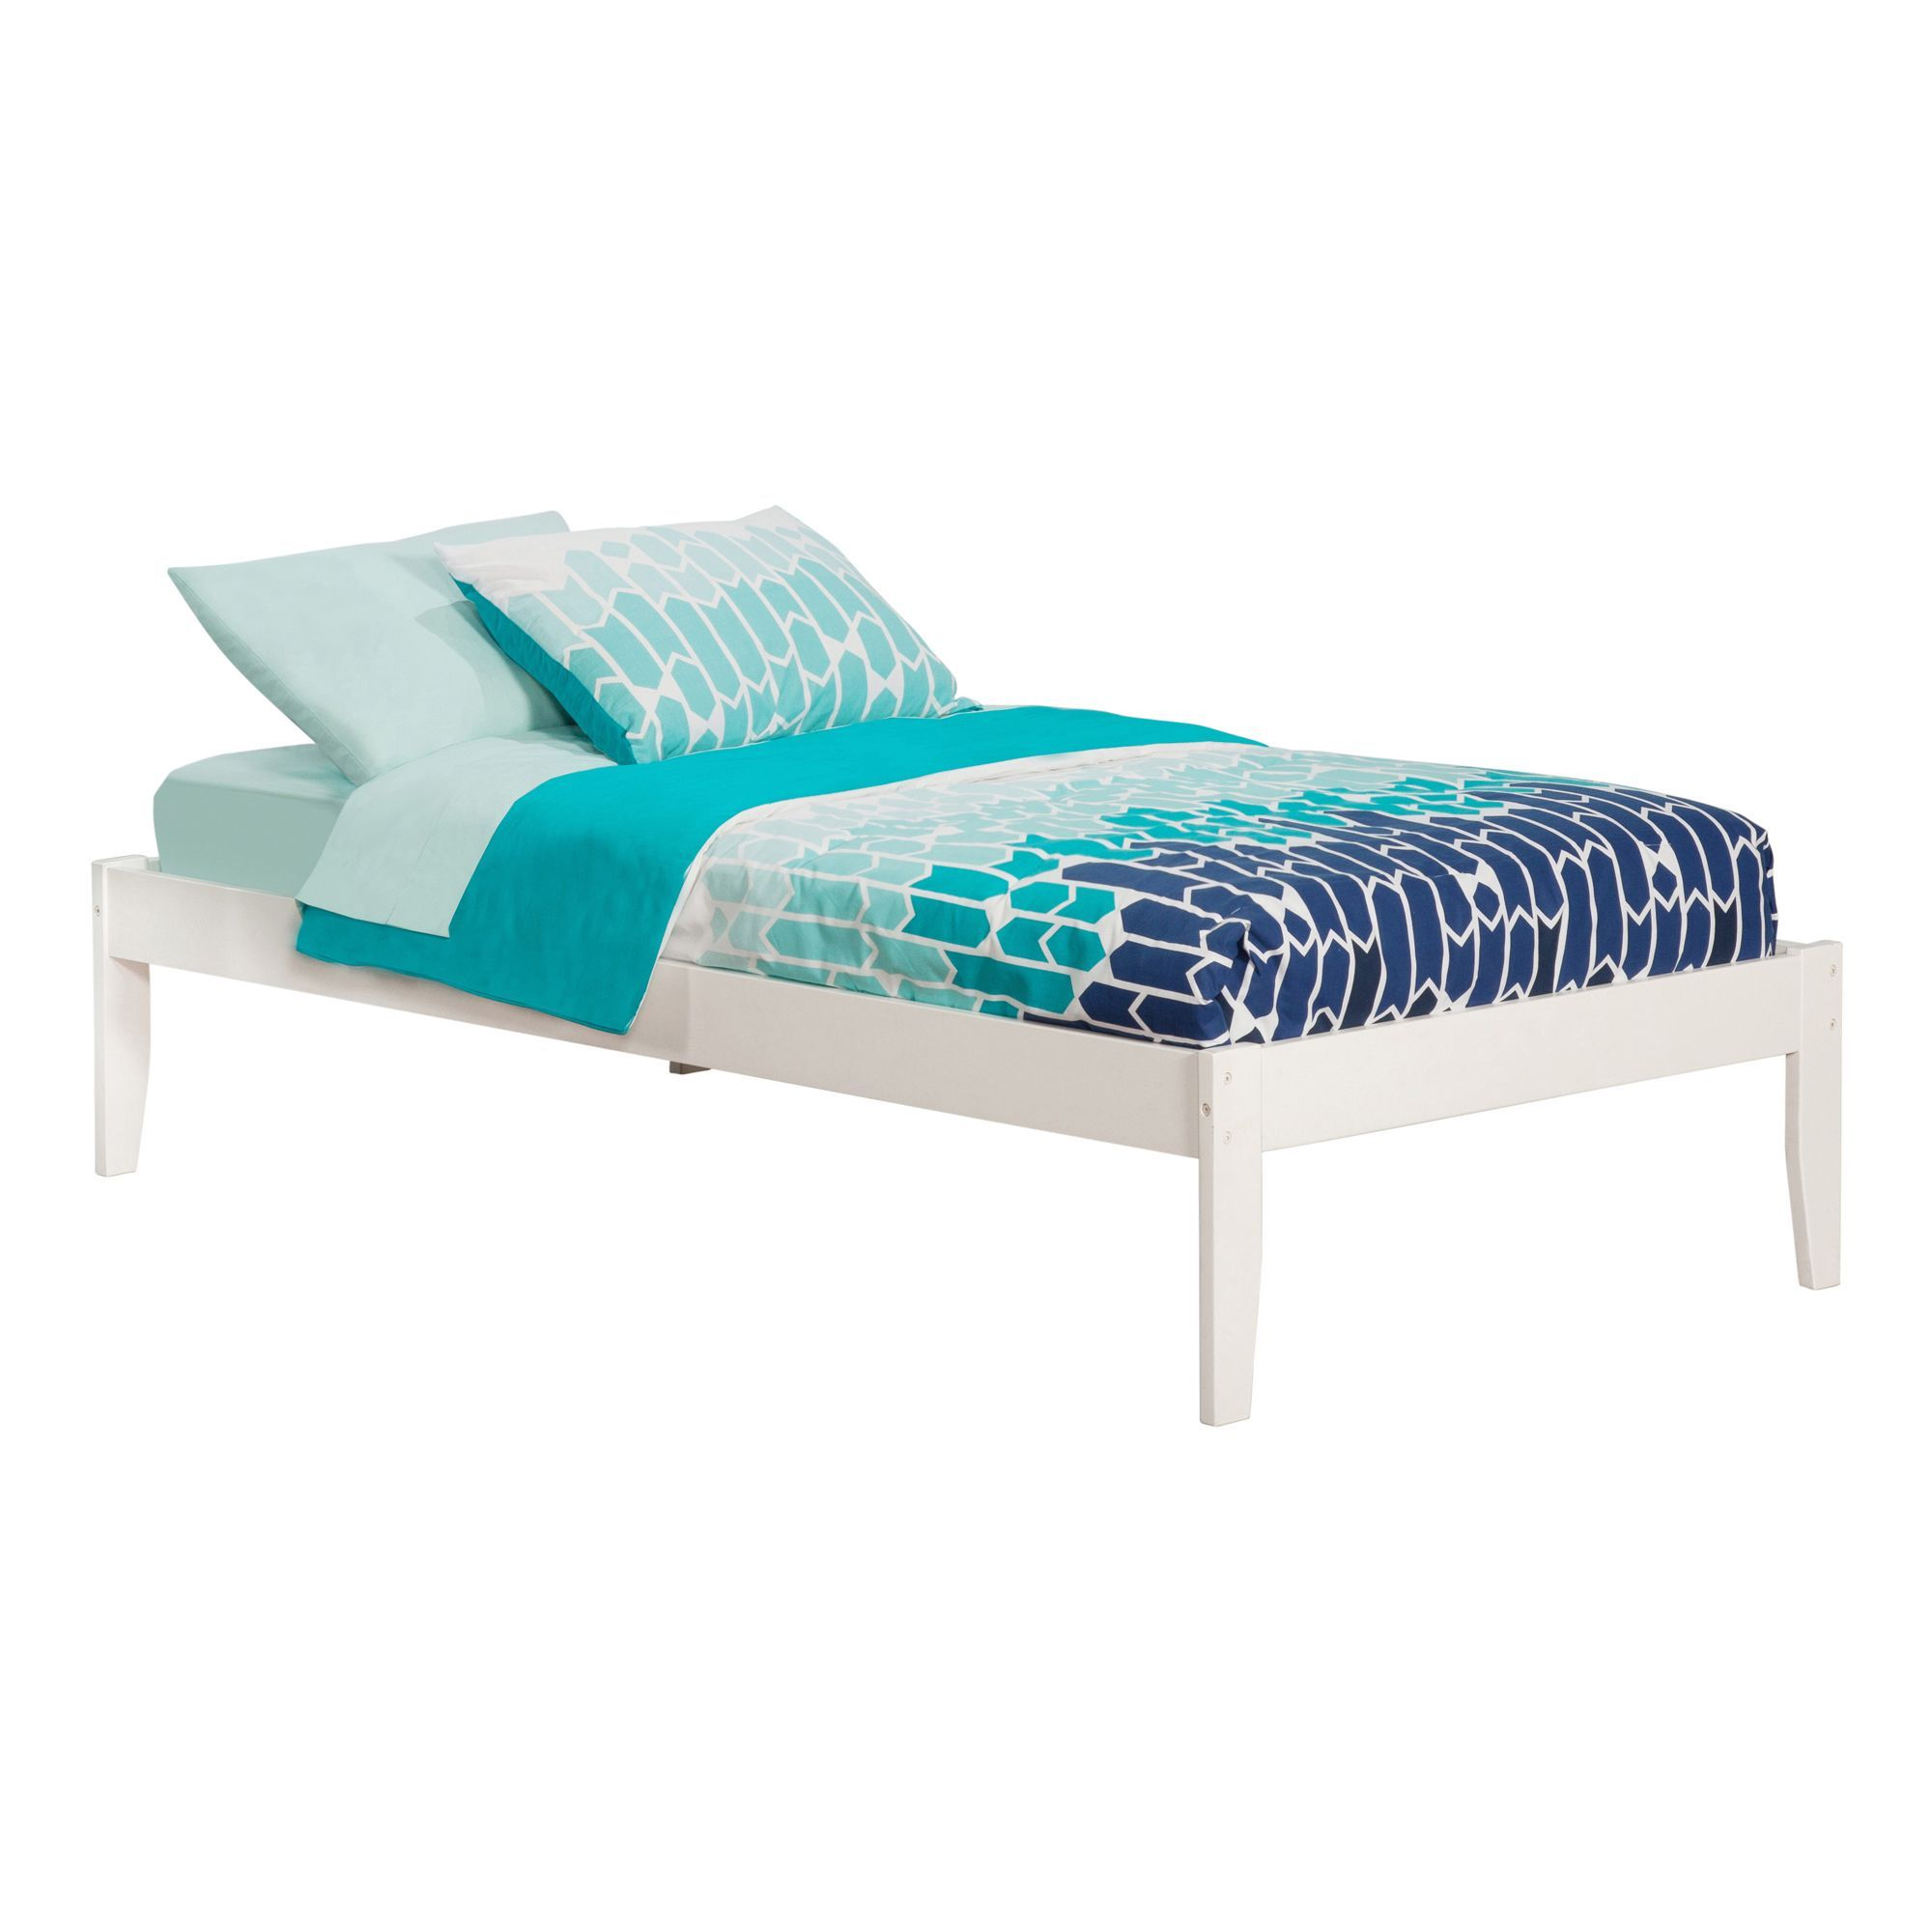 Concord White Twin Open Foot Bed (Size & Color), Atlantic